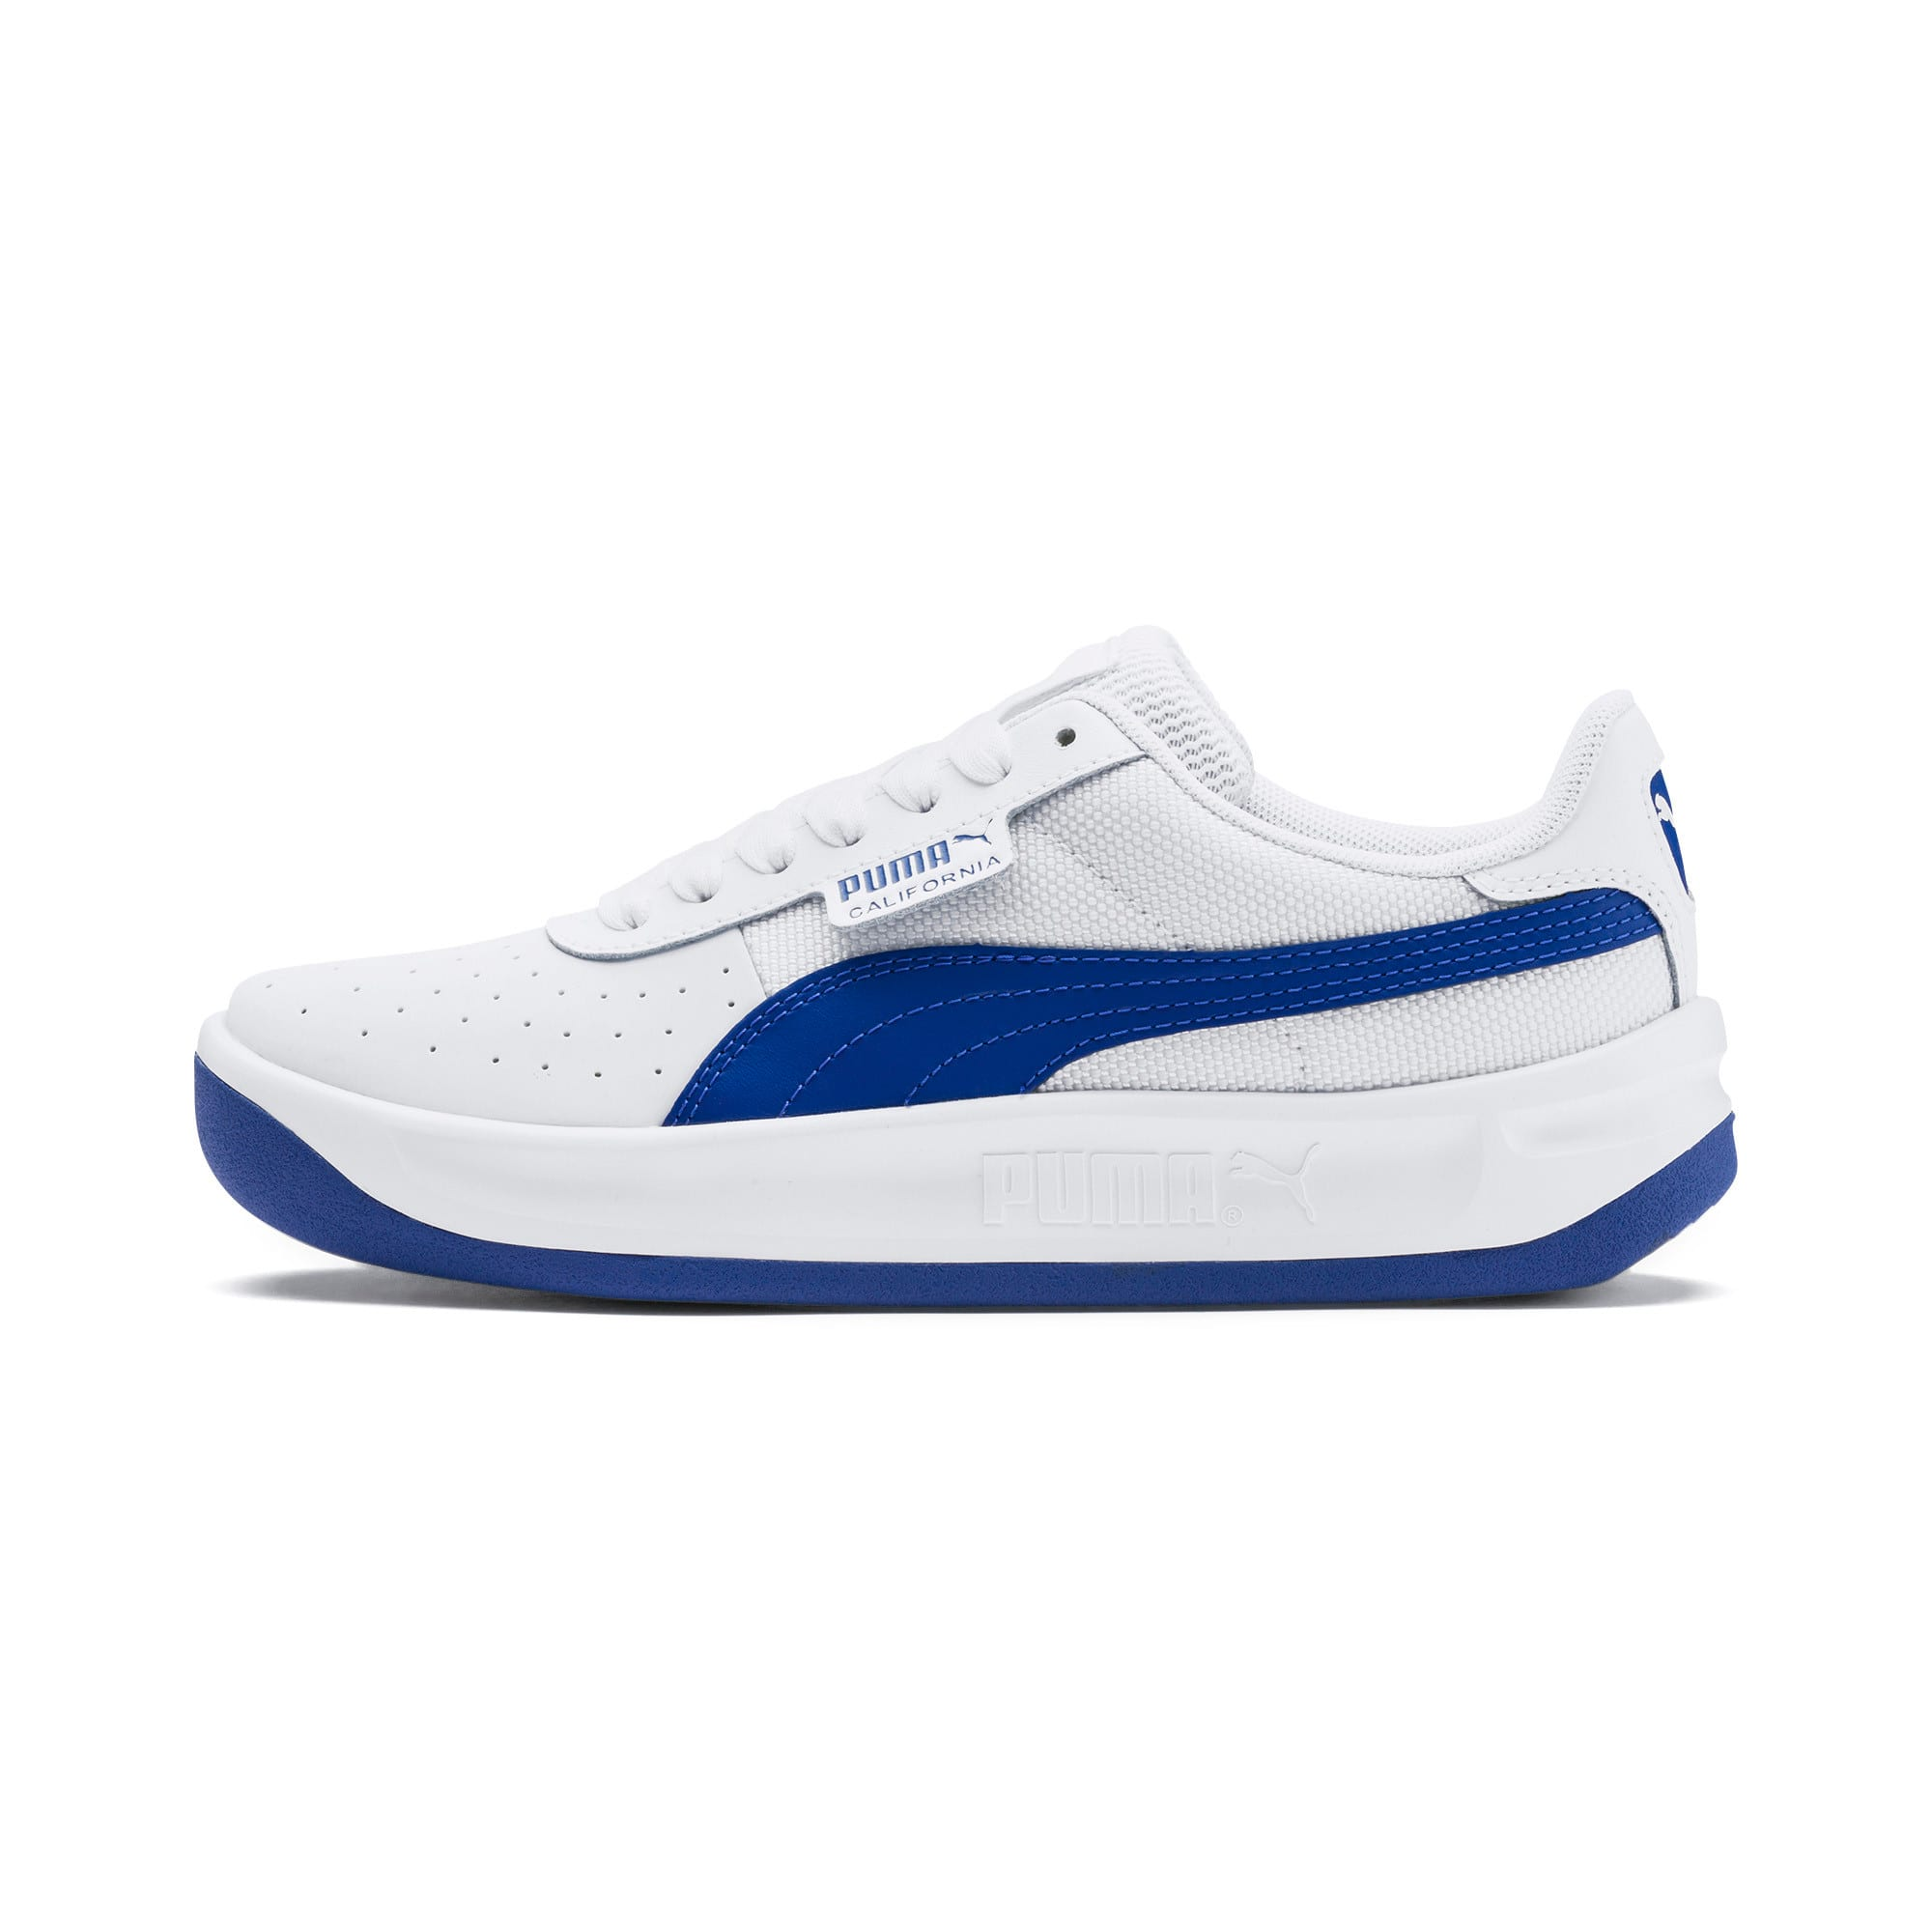 Thumbnail 1 of California Sneakers JR, Puma White-Galaxy Blue, medium